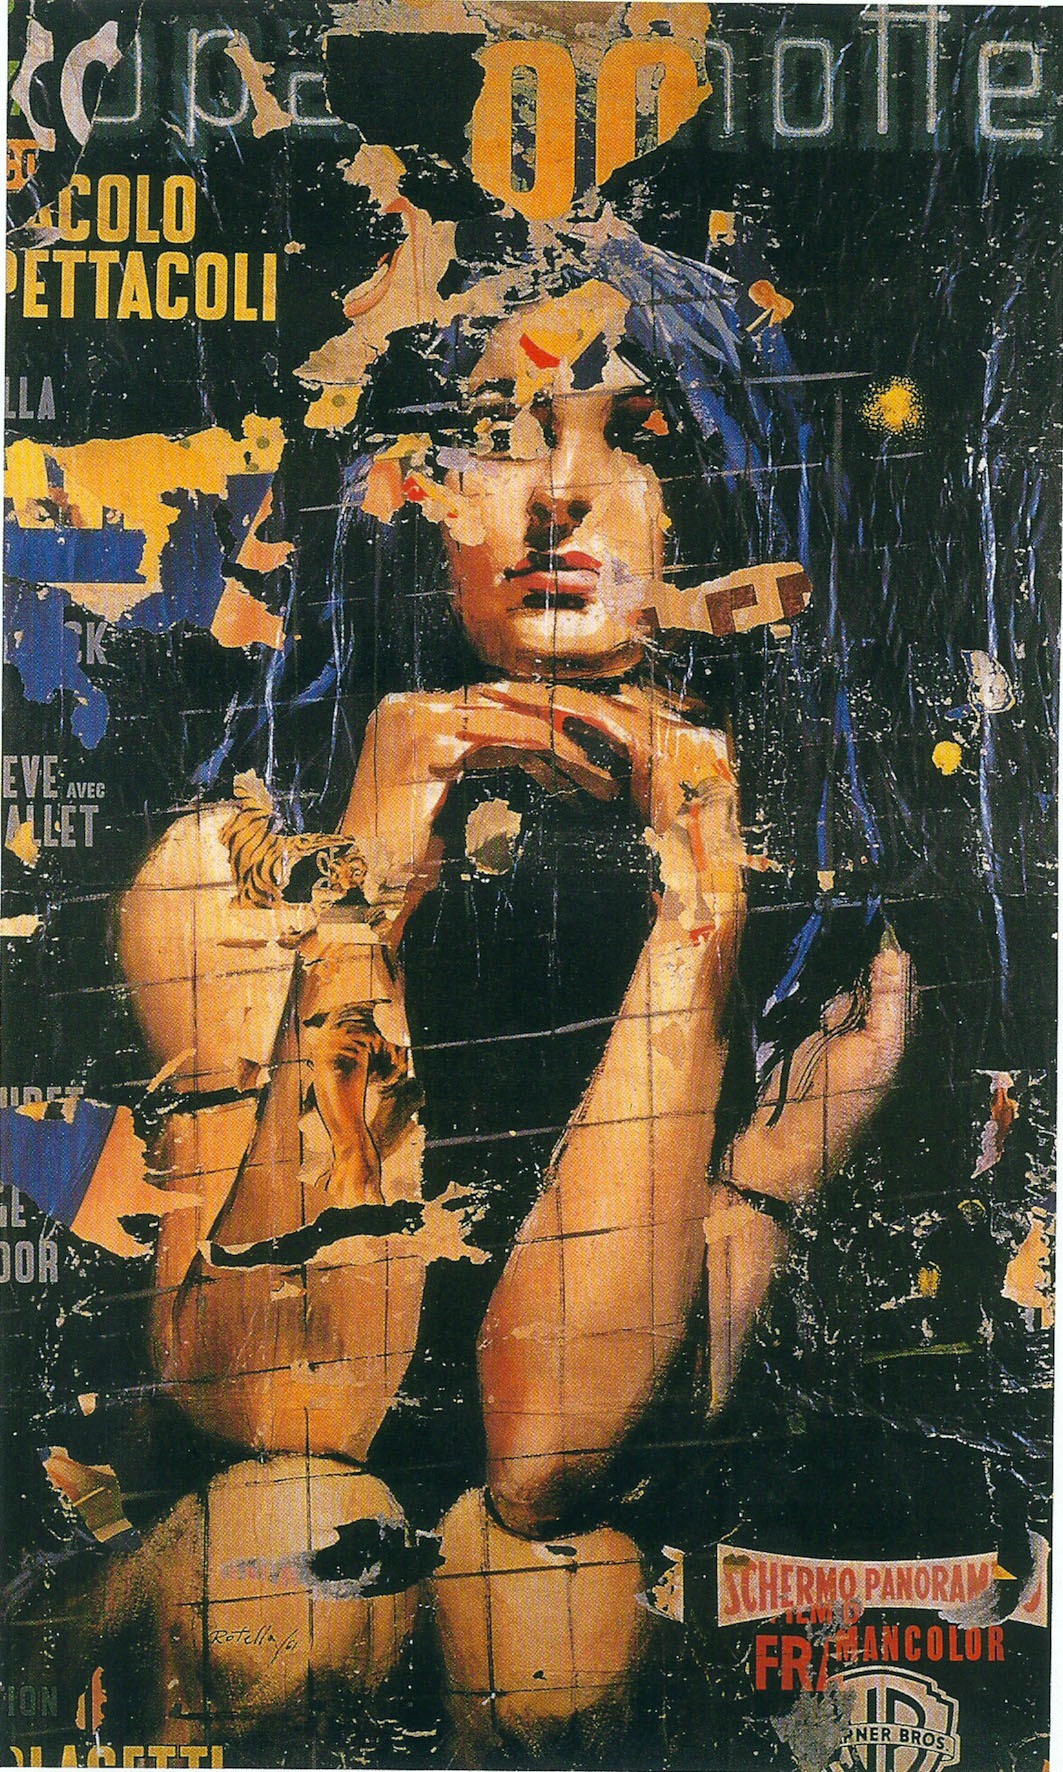 Mimmo Rotella, Europa di notte, 1961, décollage su tela, cm 182x108, Wien, Museum moderner kunst stiftung Ludwig Wien